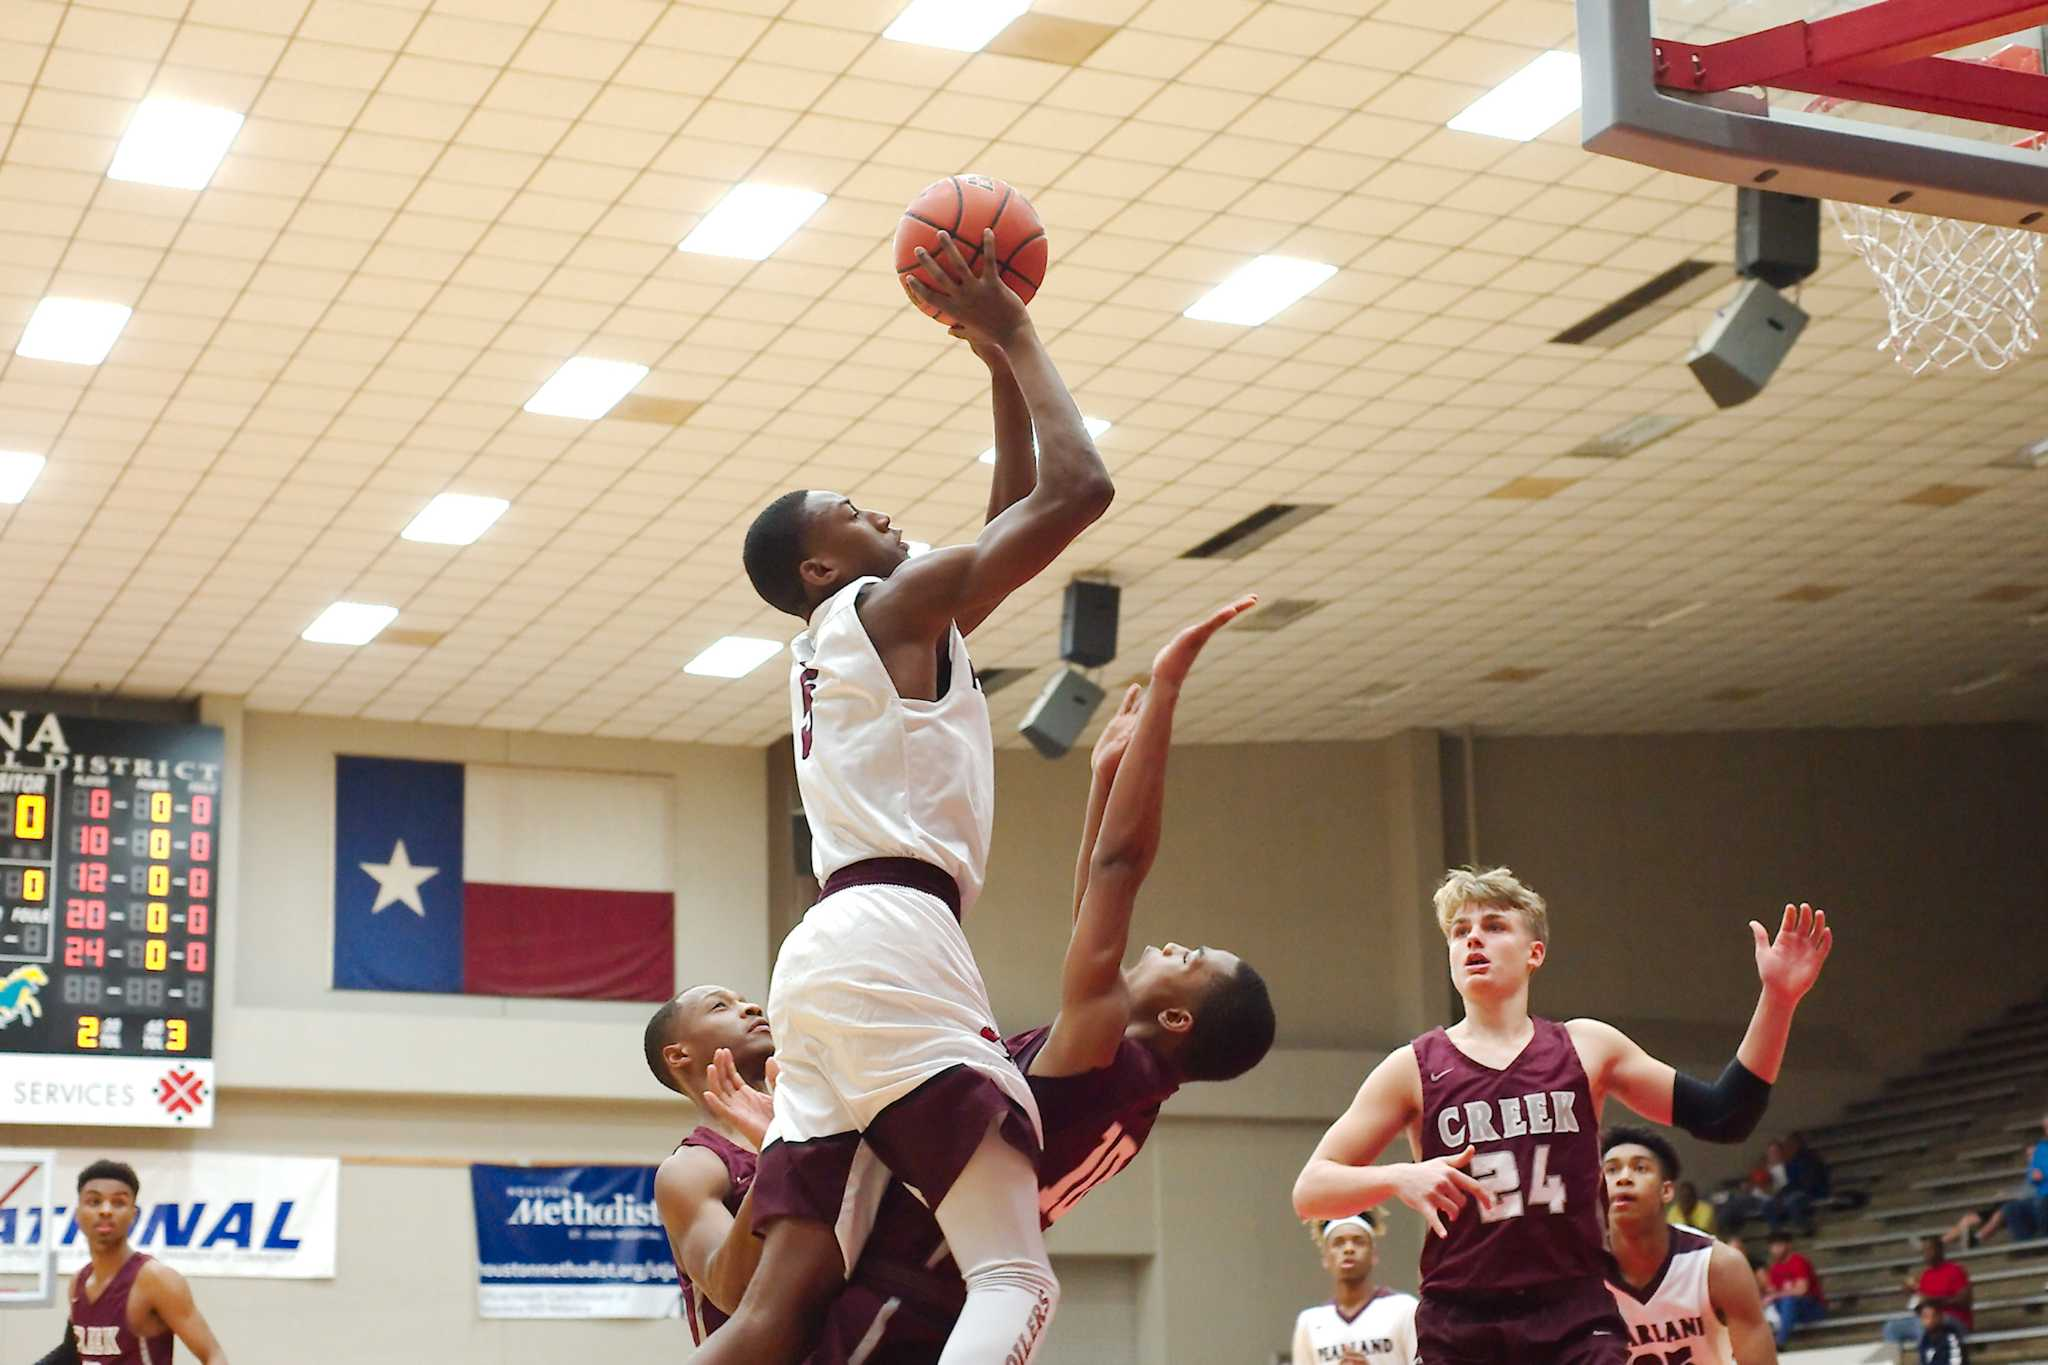 Boys' basketball: Pearland fends off Clear Creek, 54-49